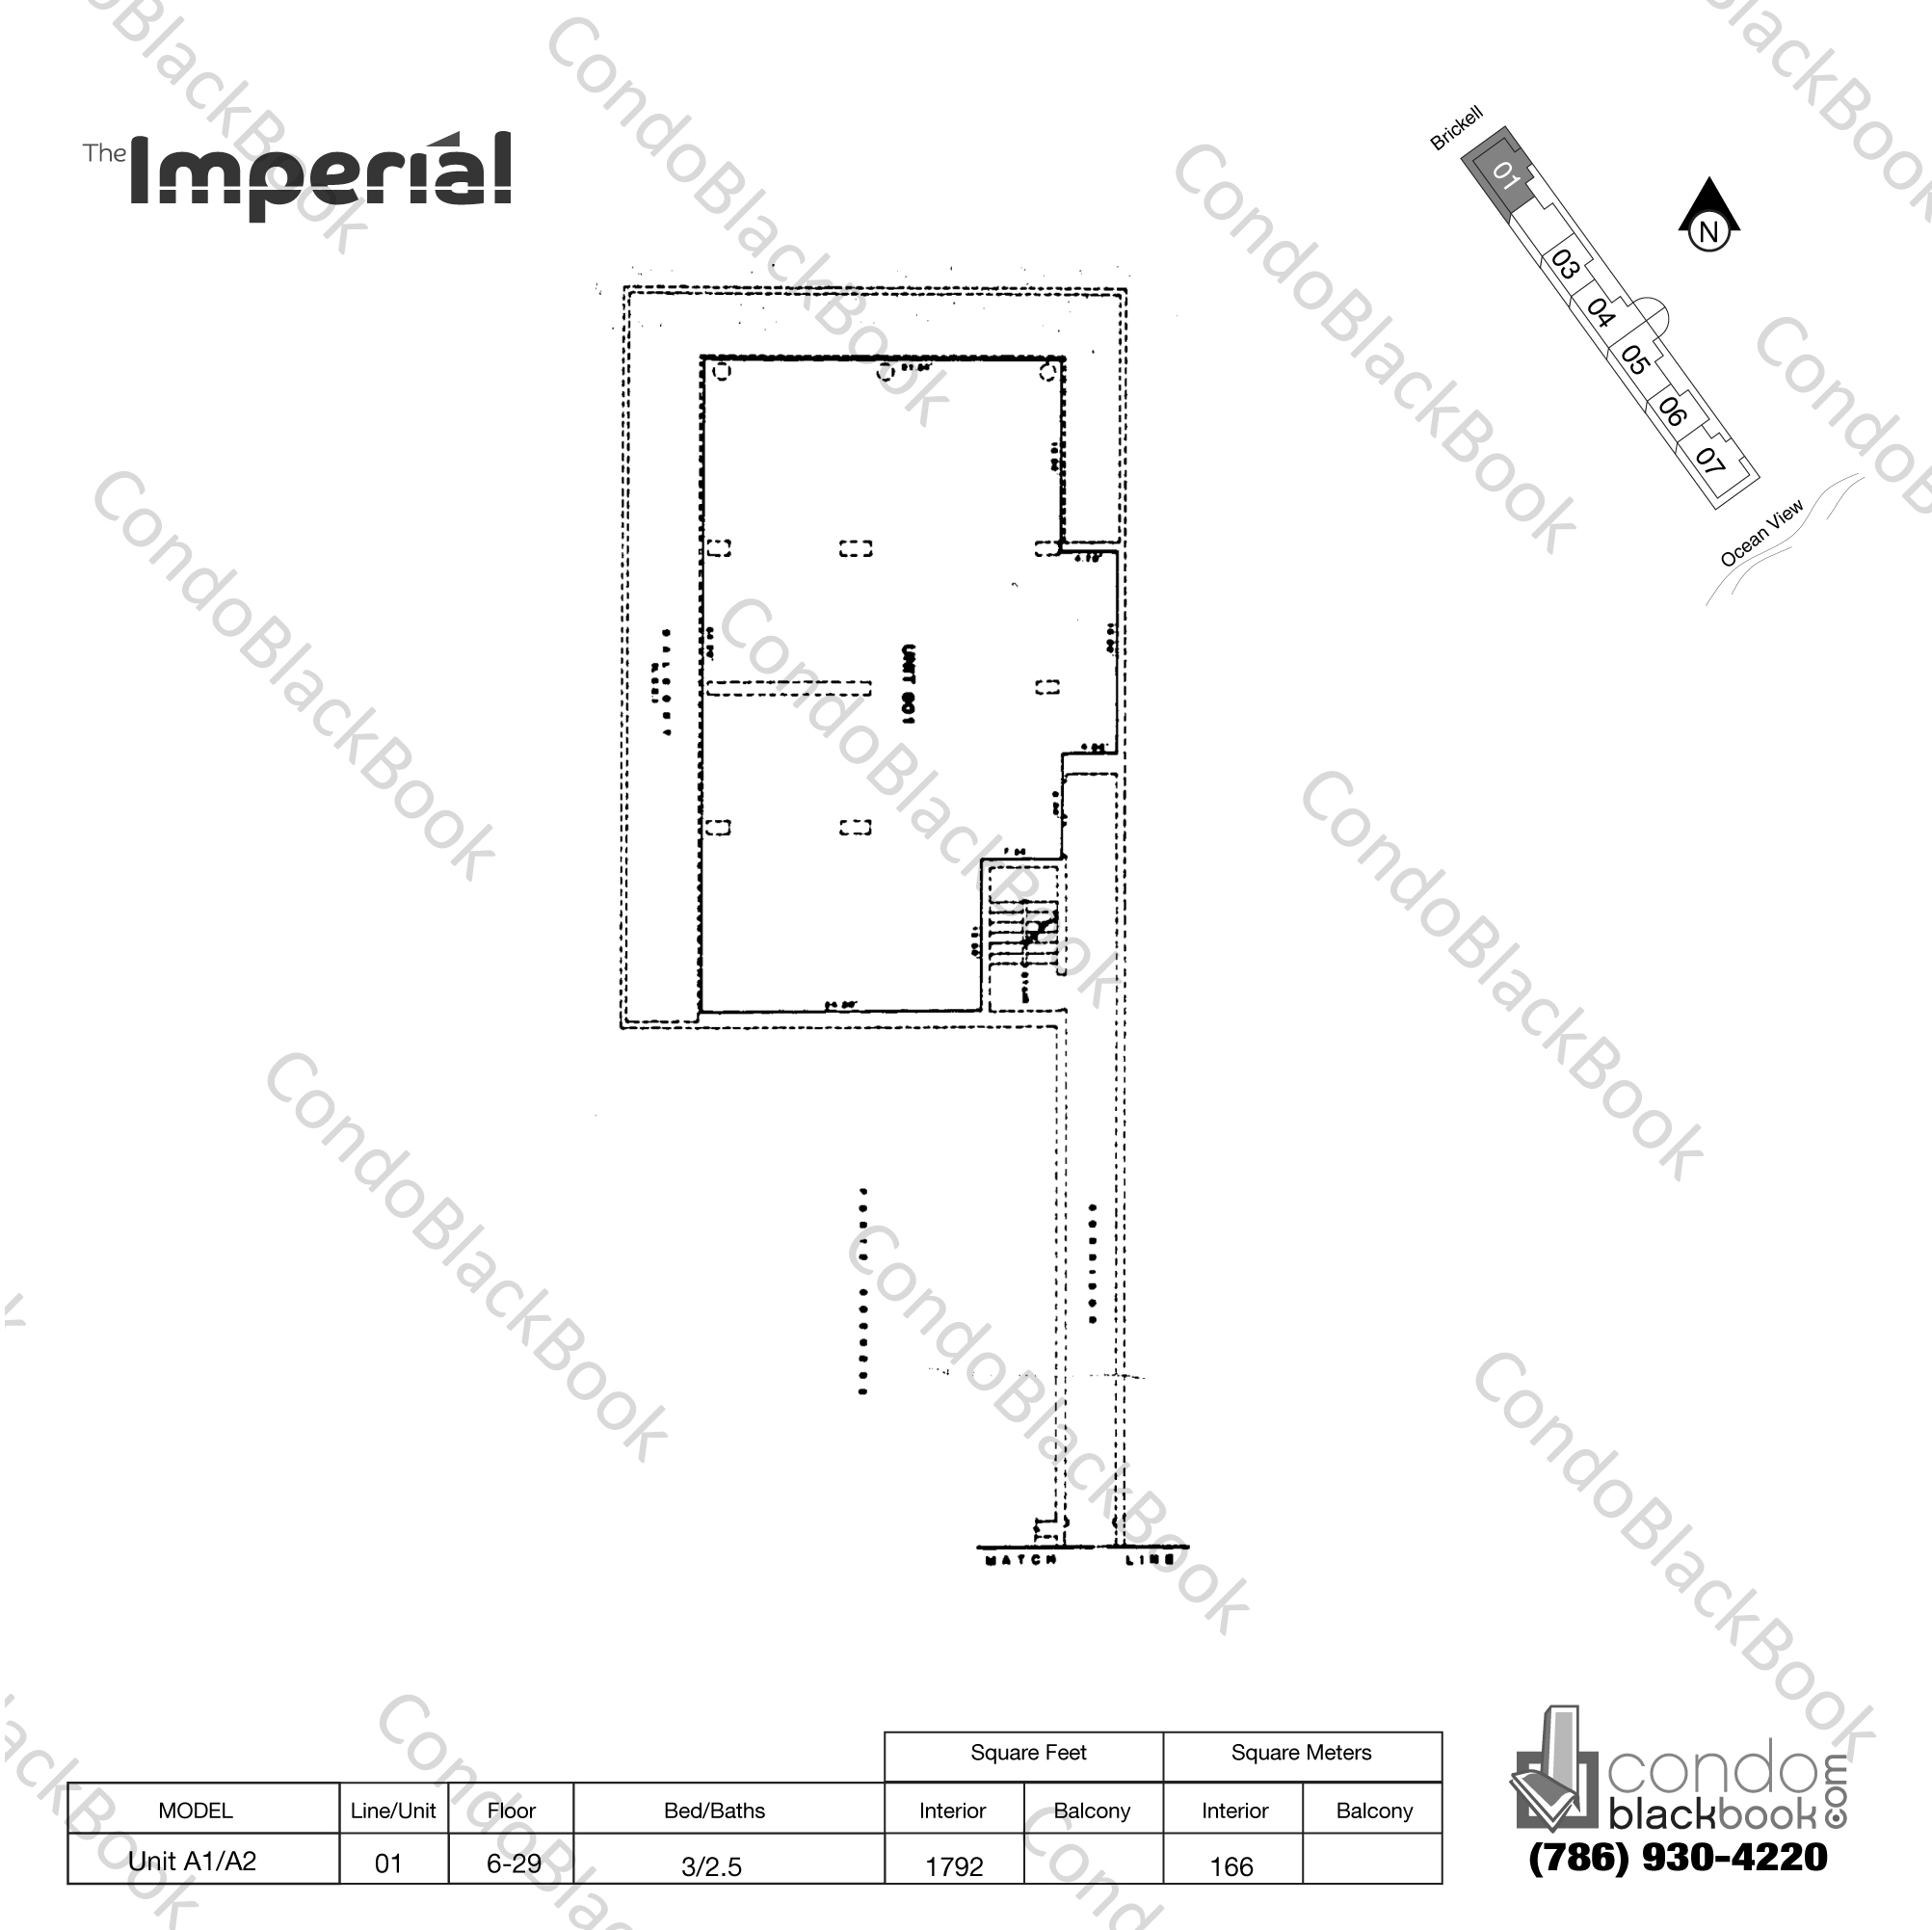 Floor plan for Imperial at Brickell Brickell Miami, model Unit A1/A2, line 01, 3/2.5 bedrooms, 1792 sq ft